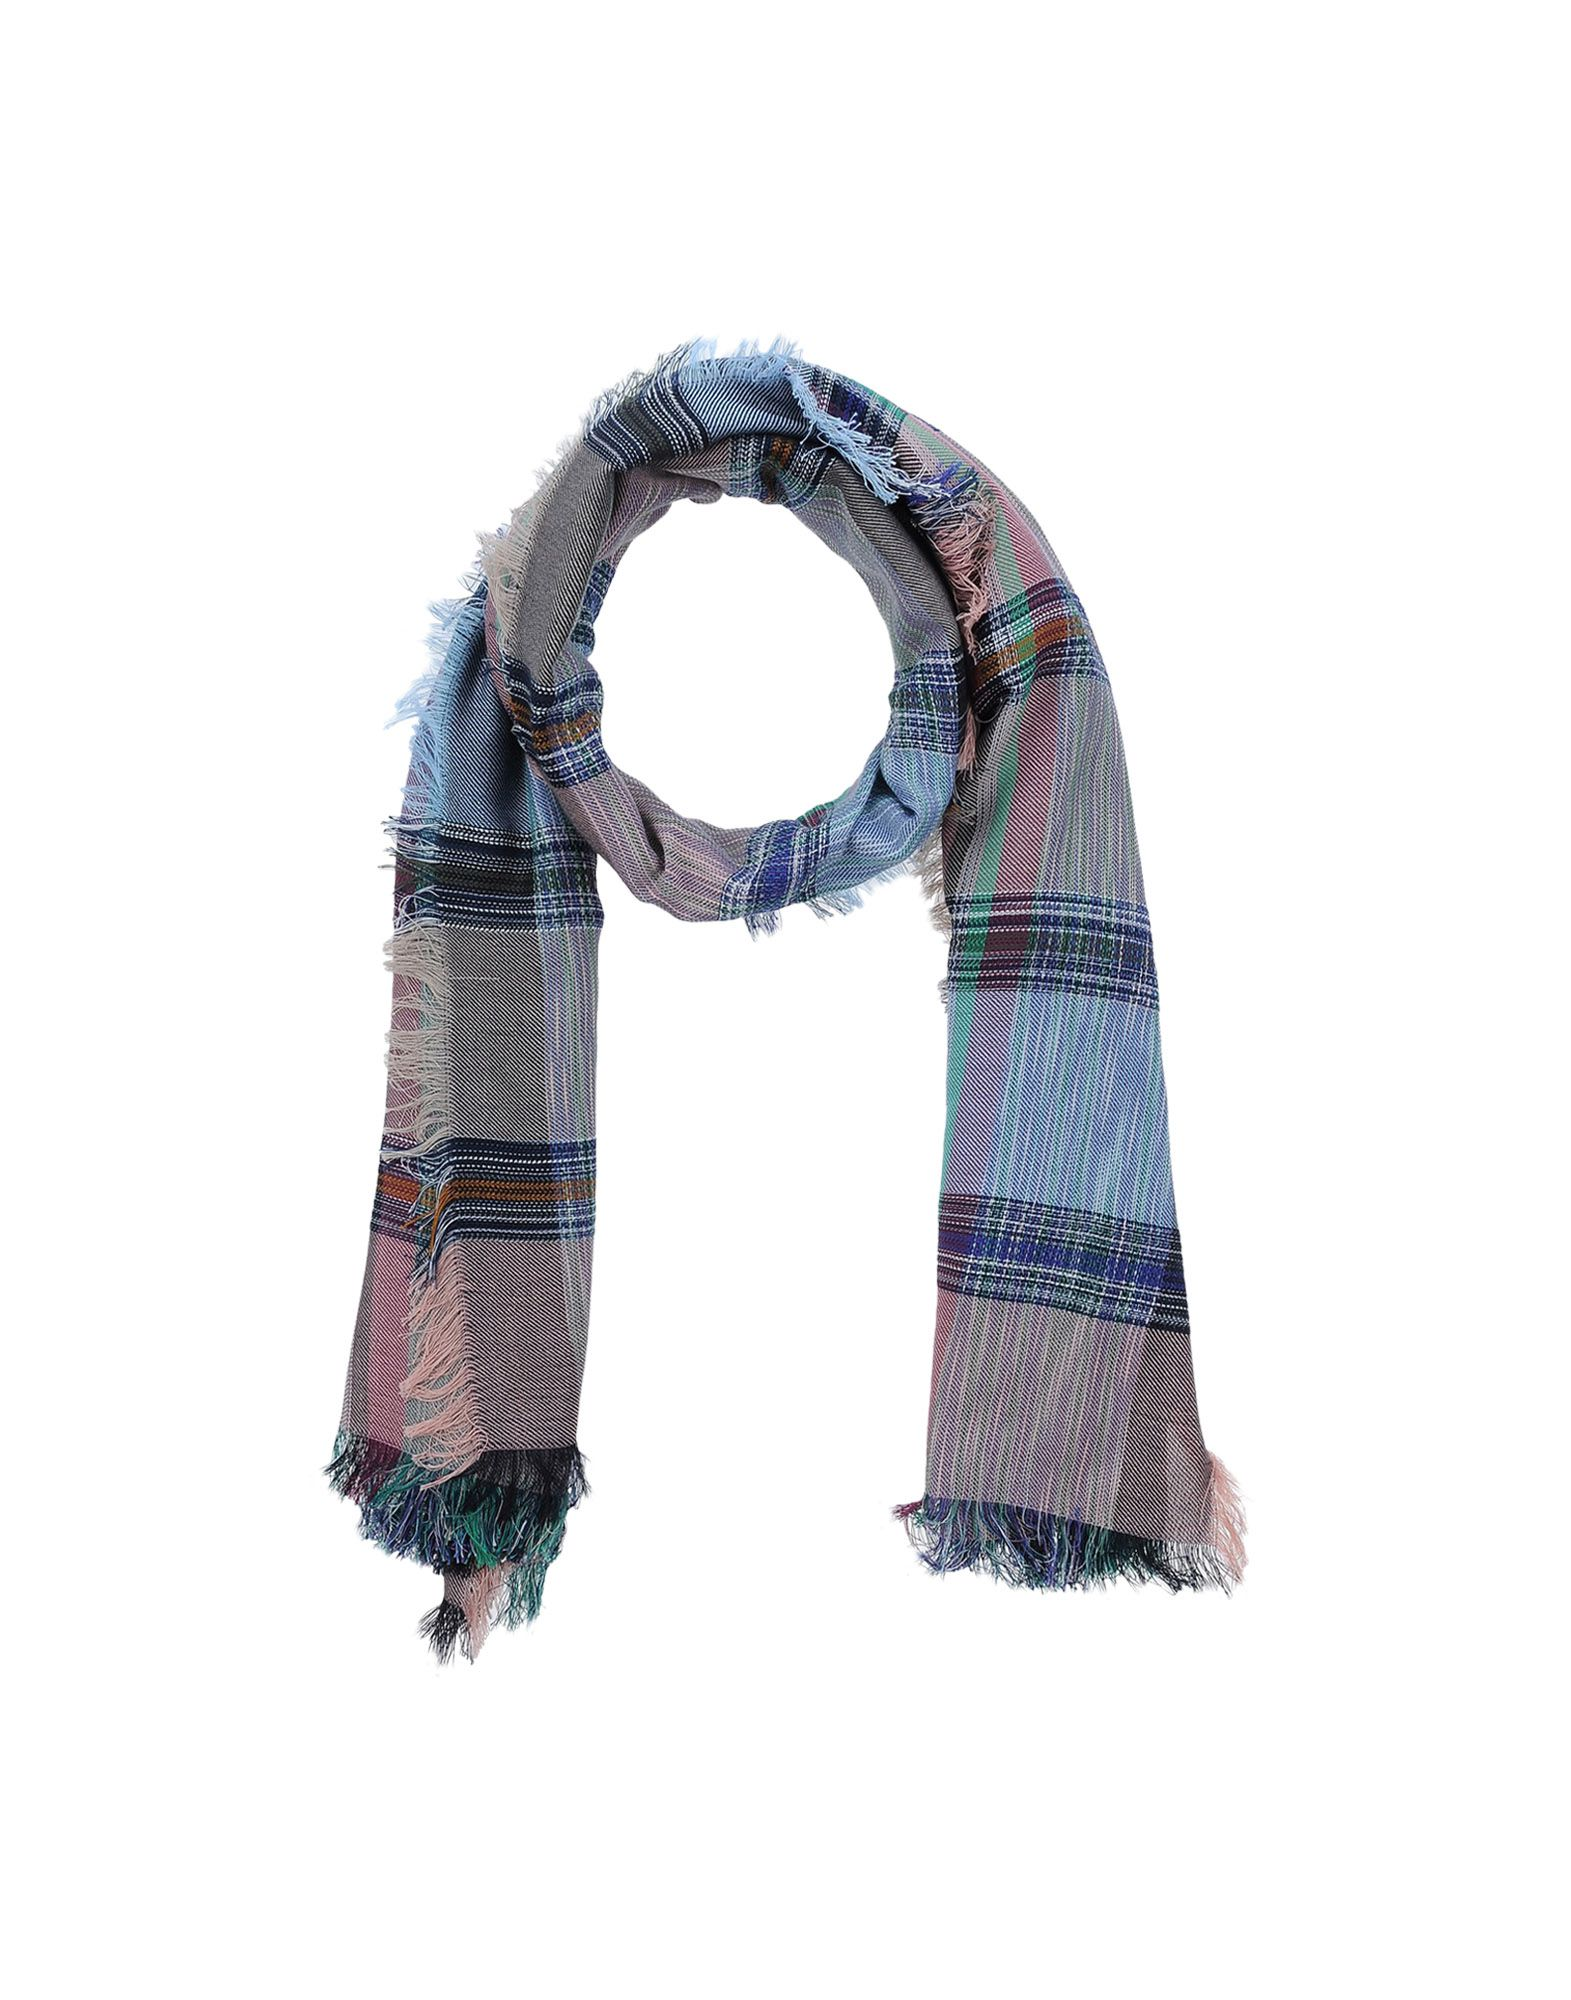 ACCESSORIES - Oblong scarves Byblos o9mJq